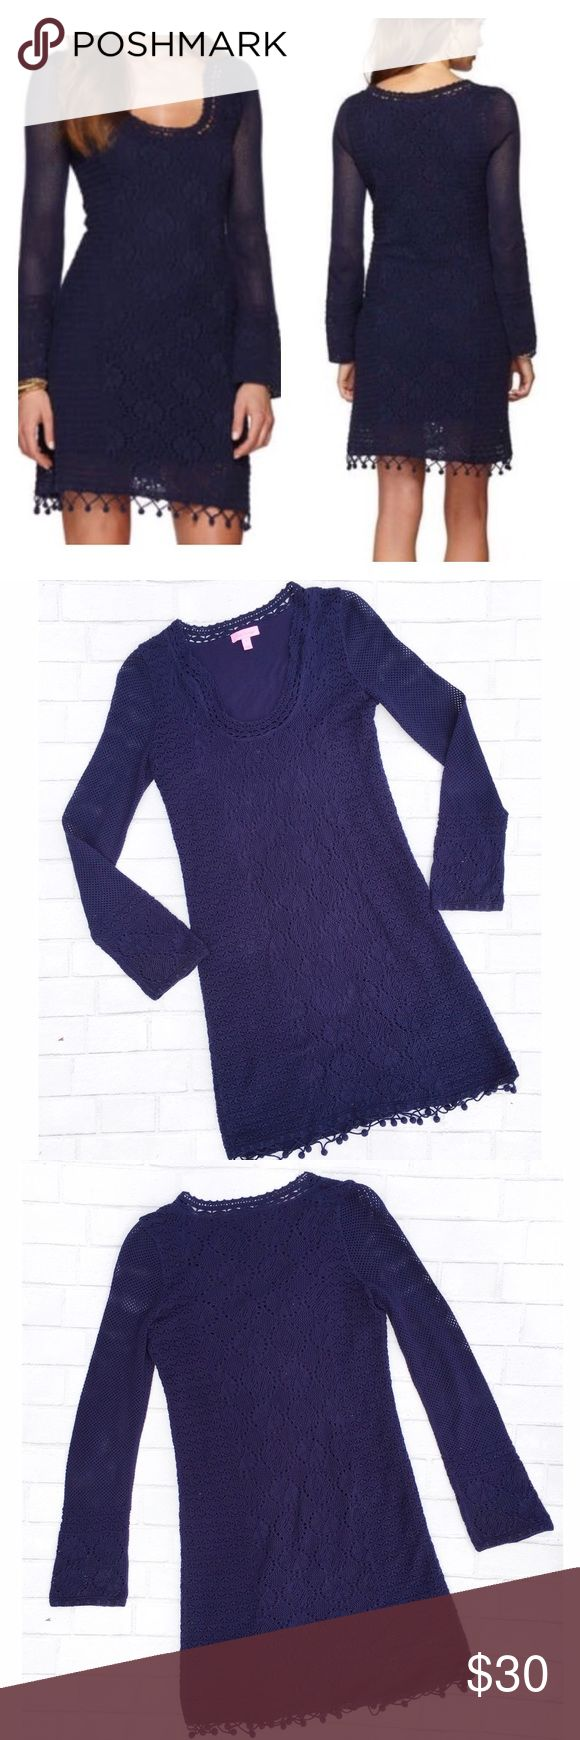 "Lilly Pulitzer Athena Crochet Sweater Dress Pre-owned Lilly Pulitzer in great condition with no flaws! Perfect style for a night out! It features mixed stitches, hand crochet at hem, & fully lined!   -Underarm to underarm: 16.5""  Length: 35.5"" Lilly Pulitzer Dresses Mini"